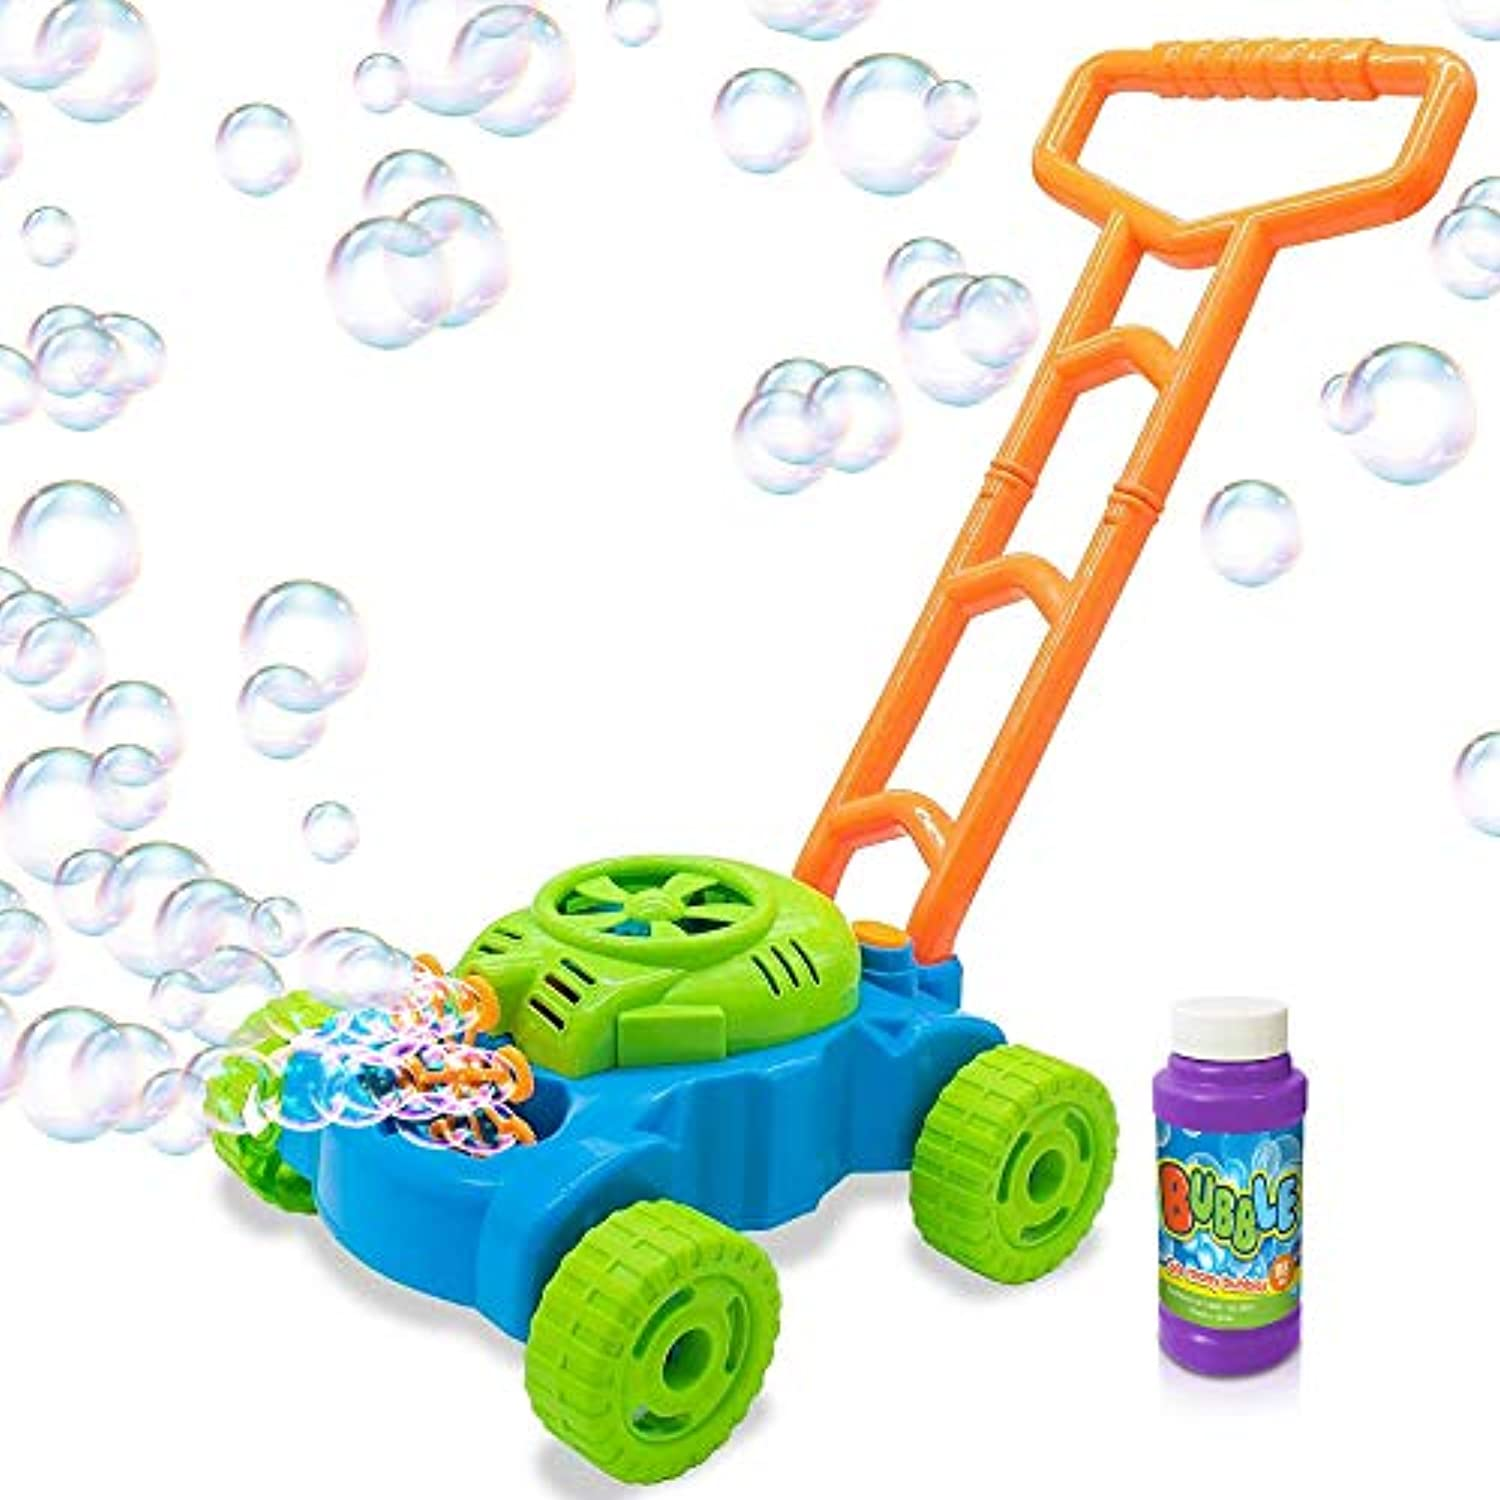 Classier: Buy ArtCreativity ArtCreativity Bubble Lawn Mower - Electronic Bubble Blower Machine - Fun Bubbles Blowing Push Toys for Kids - Bubble Solution Included - Best Birthday Gift for Boys, Girls, Toddlers